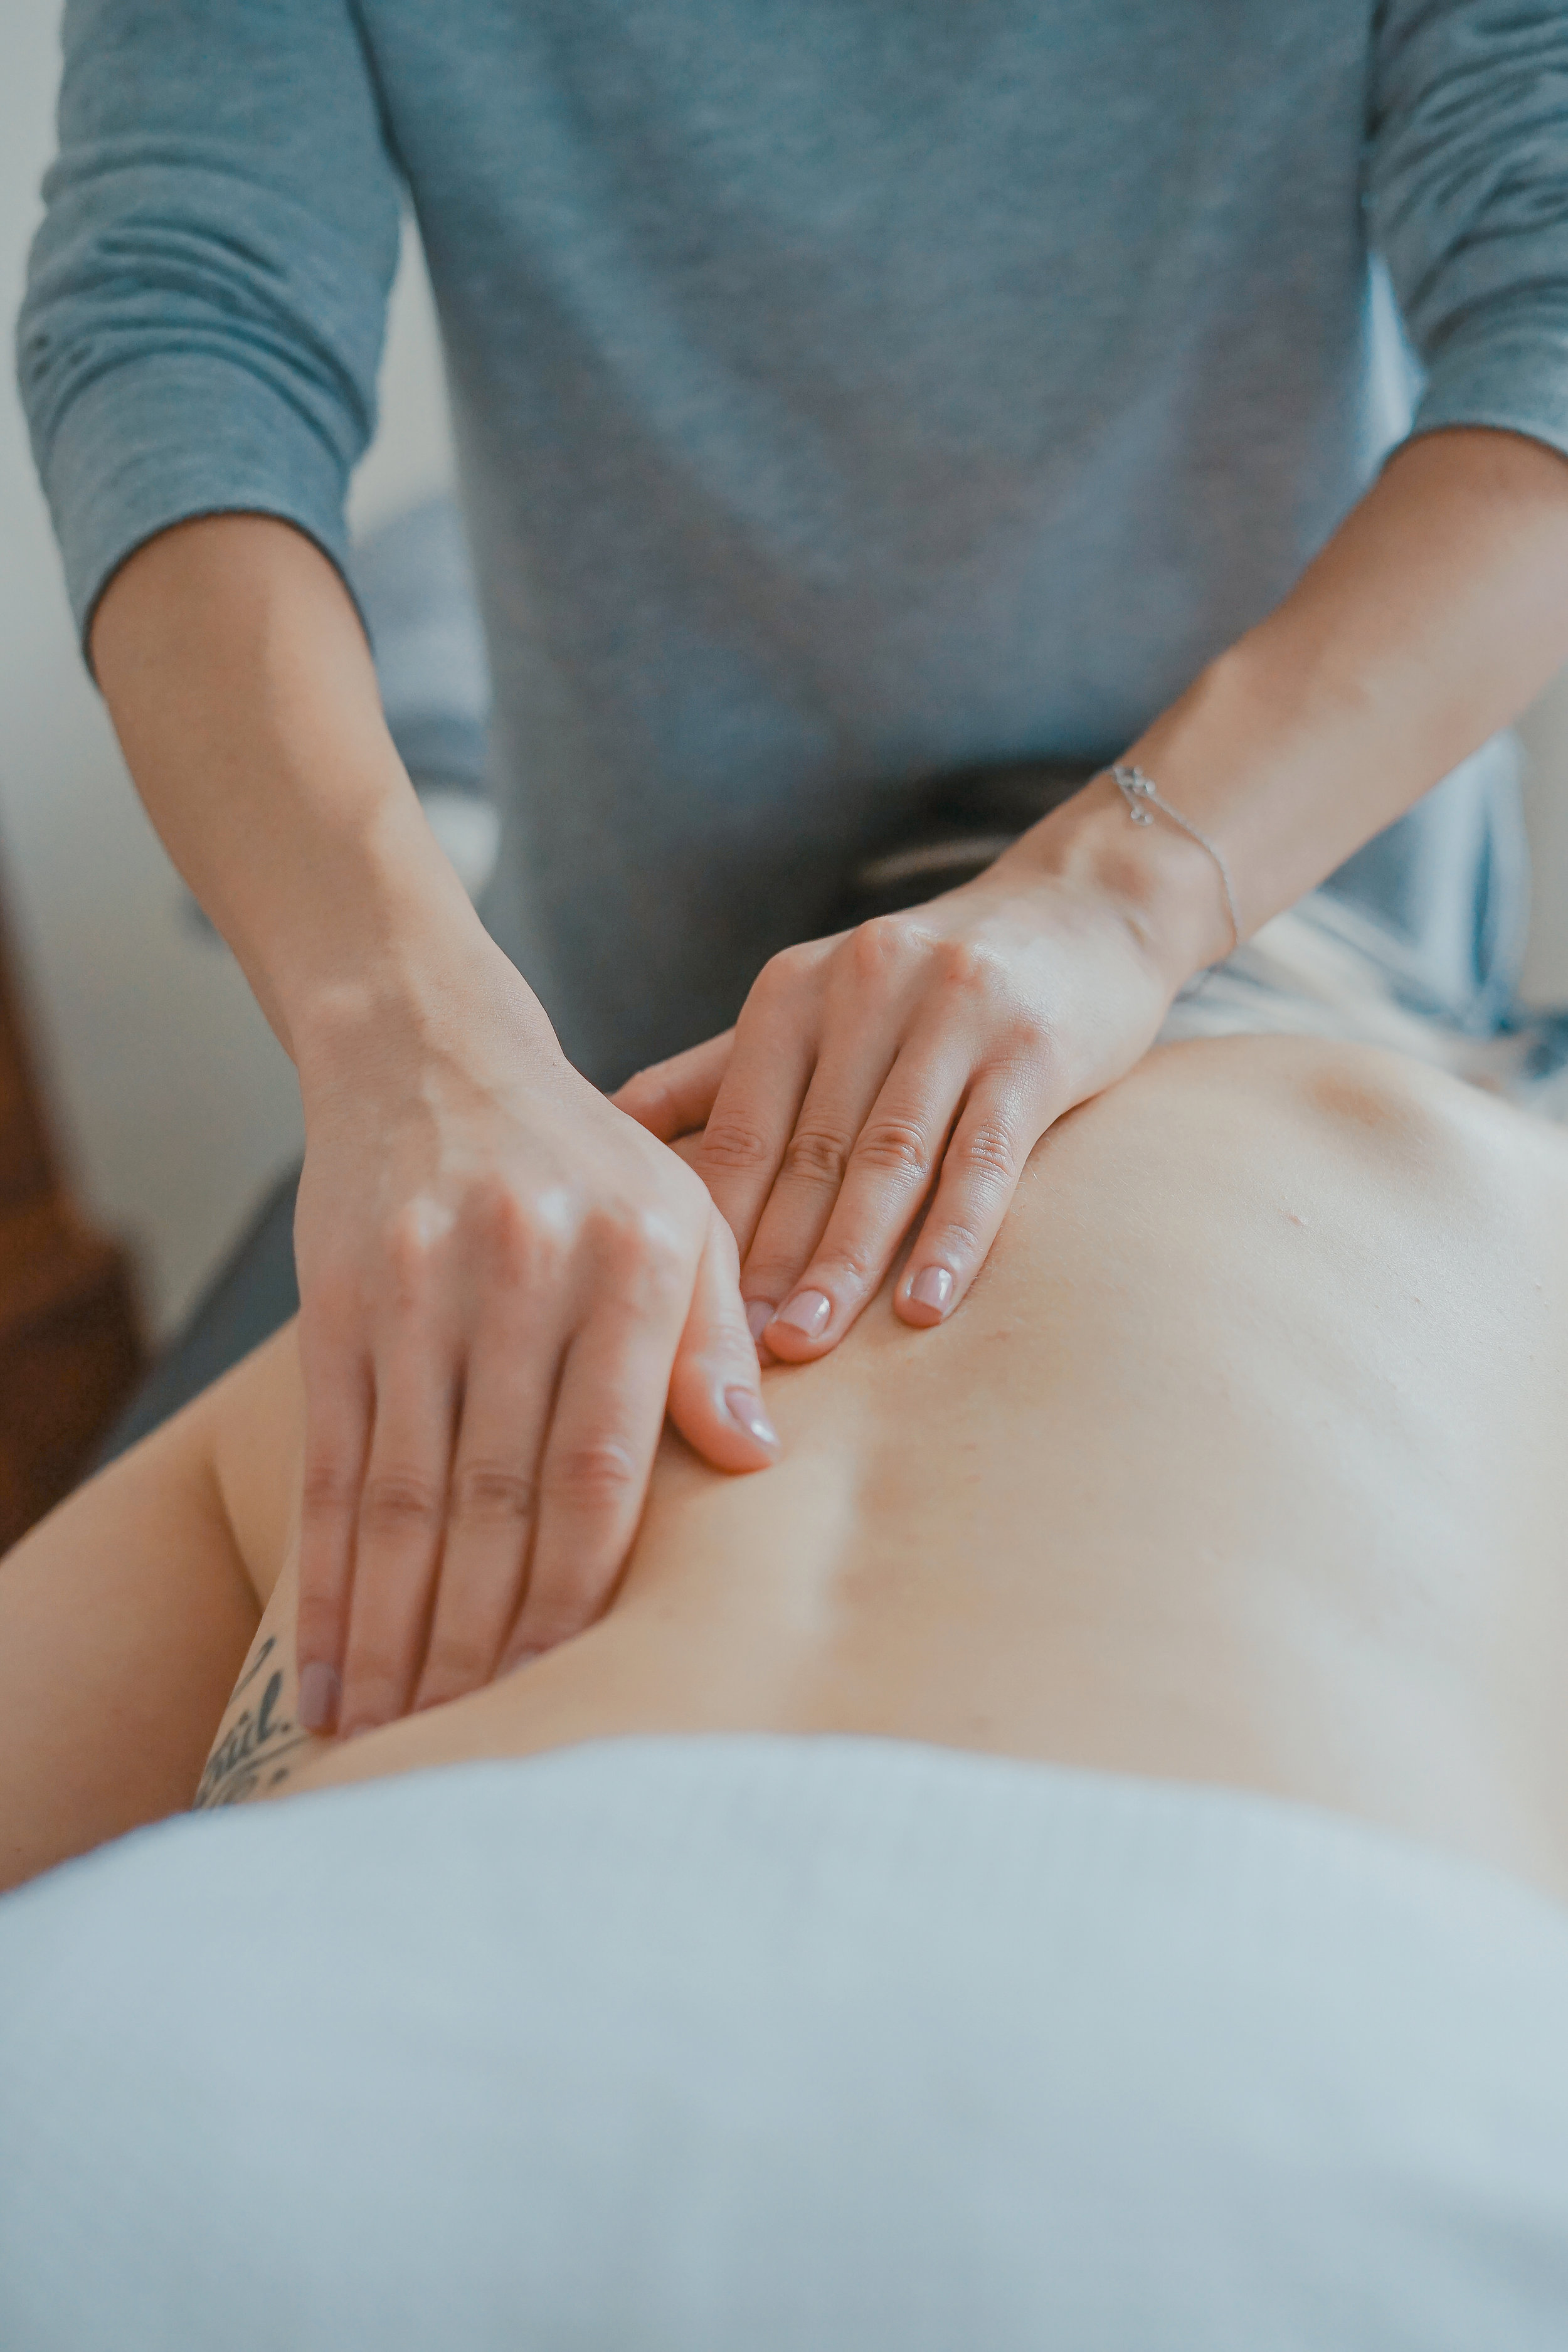 Therapeutic Massage - Our massage therapists offer an integral approach to massage to help best suit your needs.